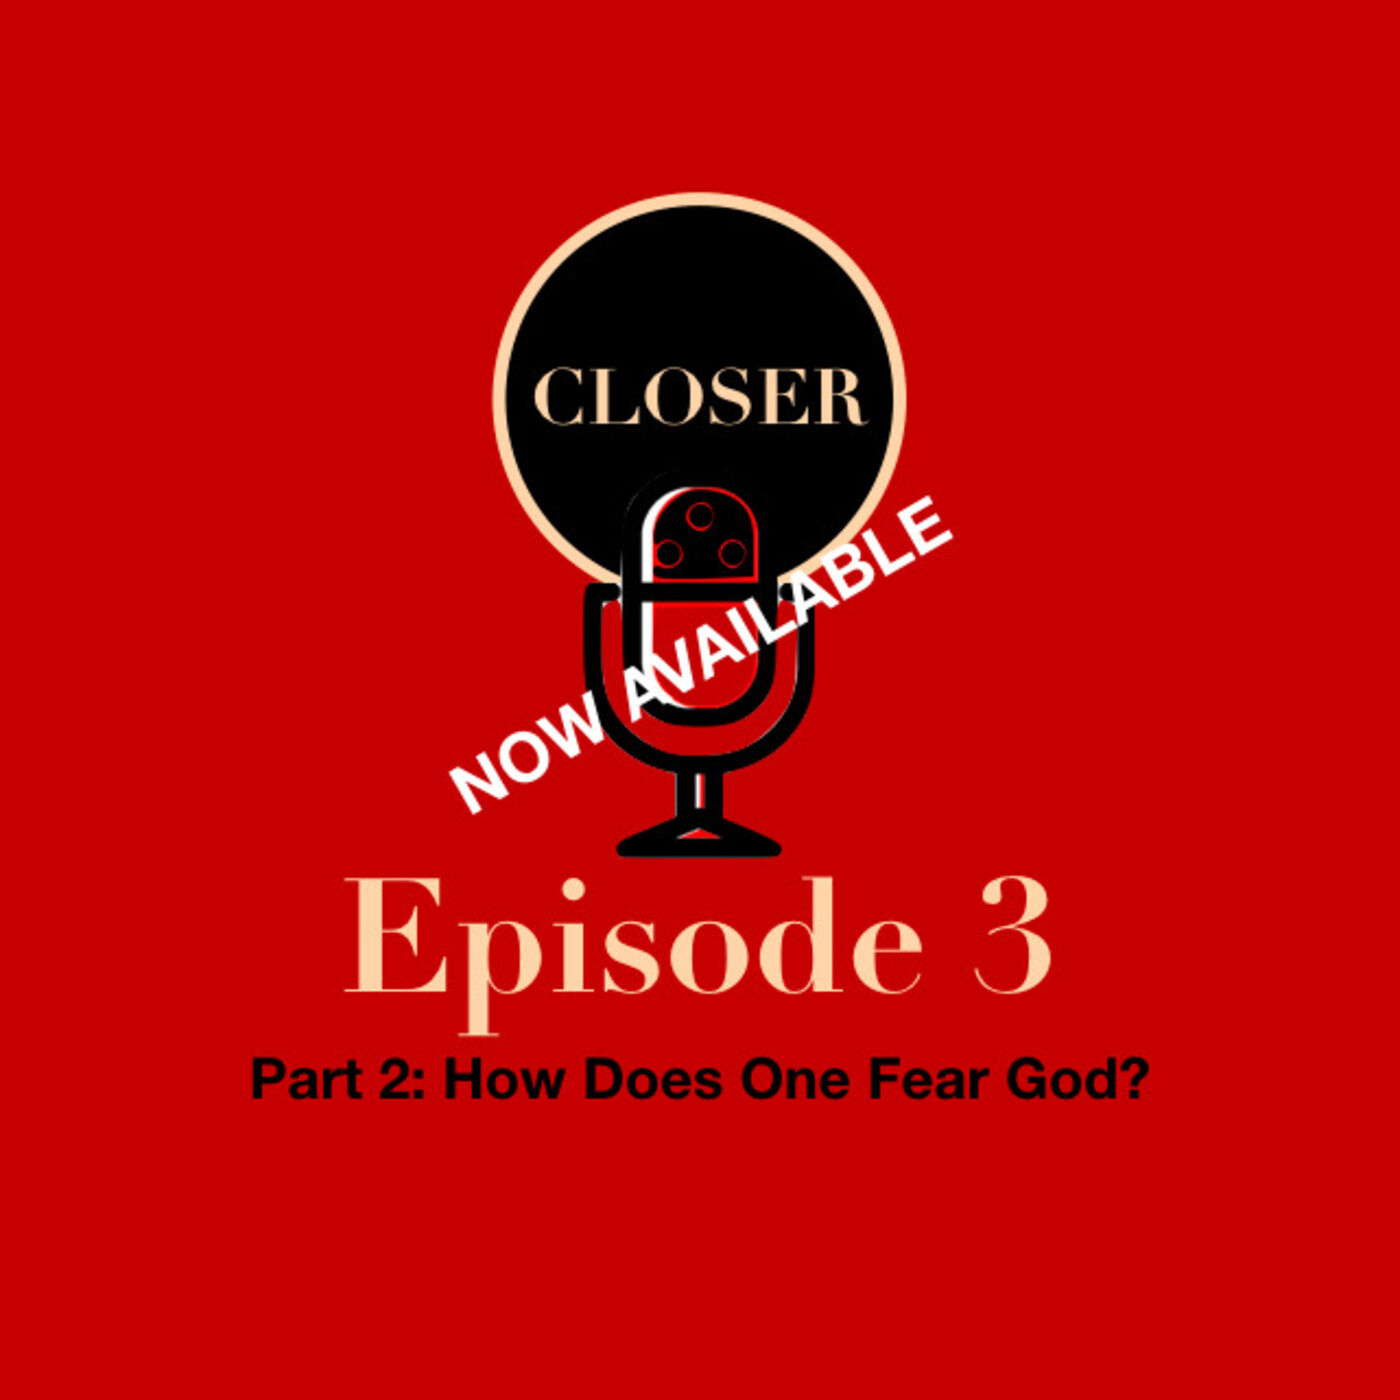 EP 3: Part 2 How Does One Fear God?